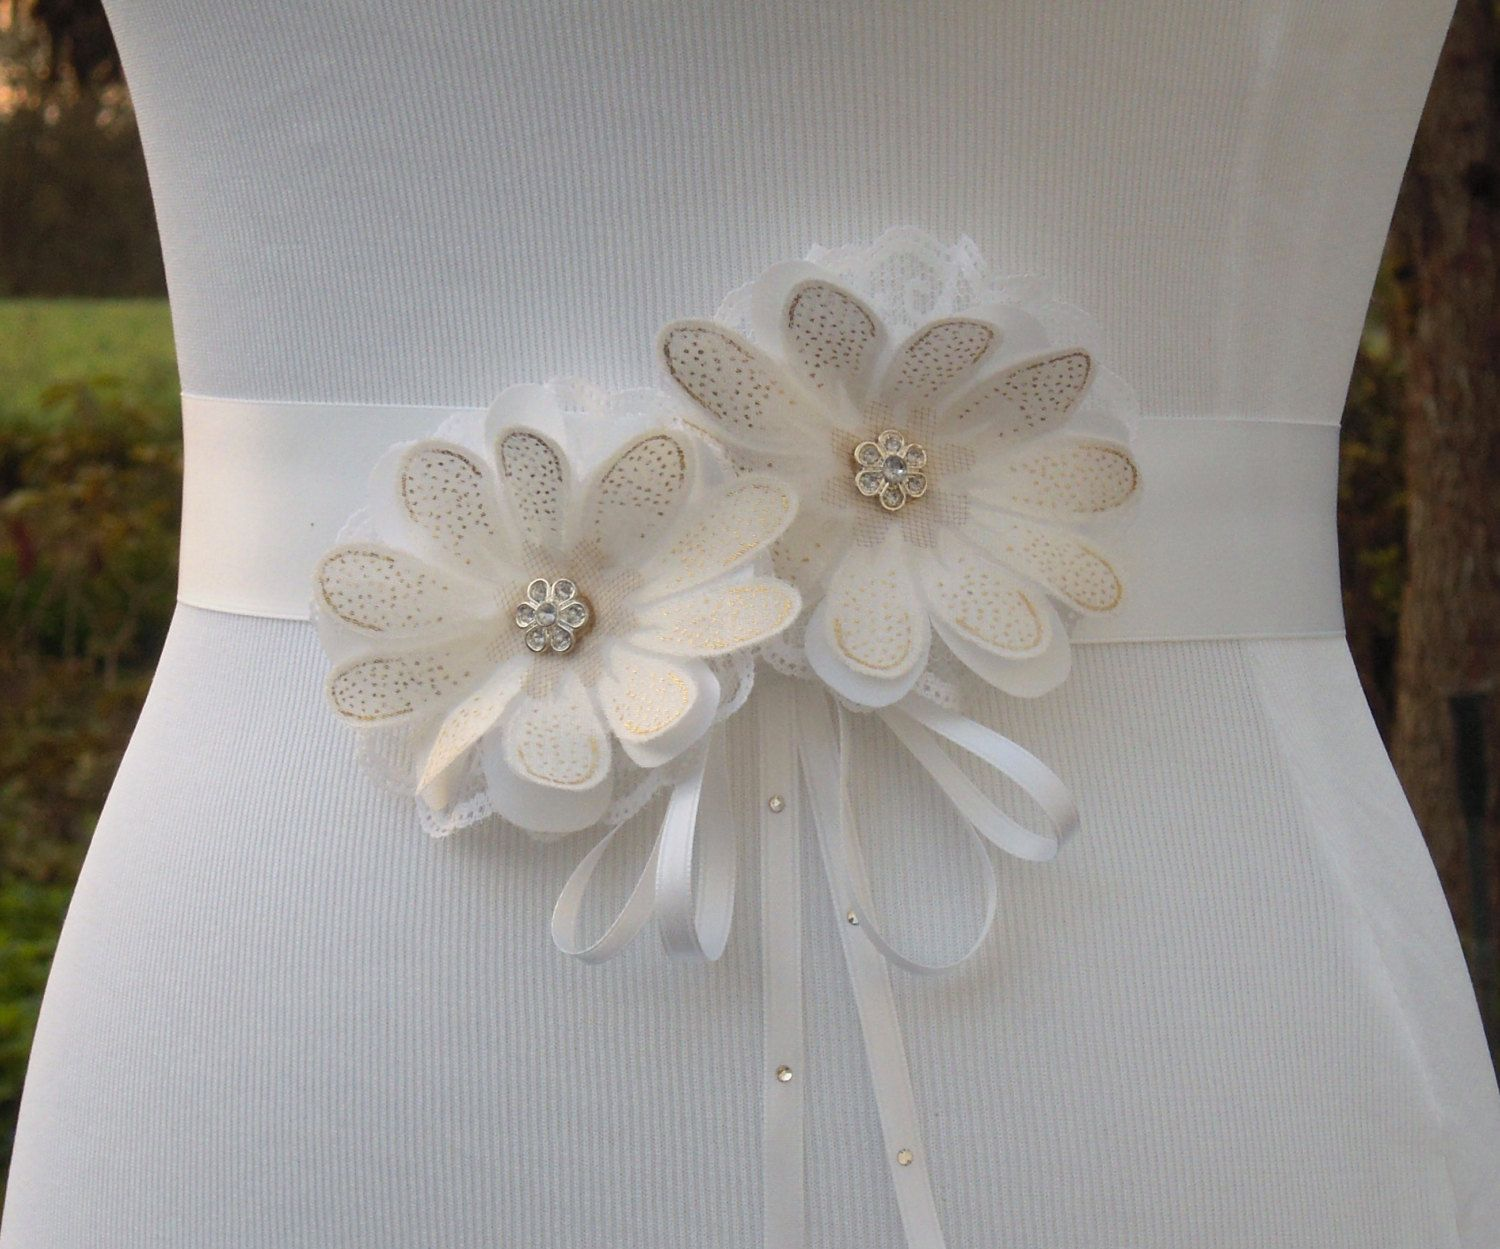 Gold wedding dress belt  White and Gold Wedding Dress Sash Belt Daisy Floral Bridal  Rustic